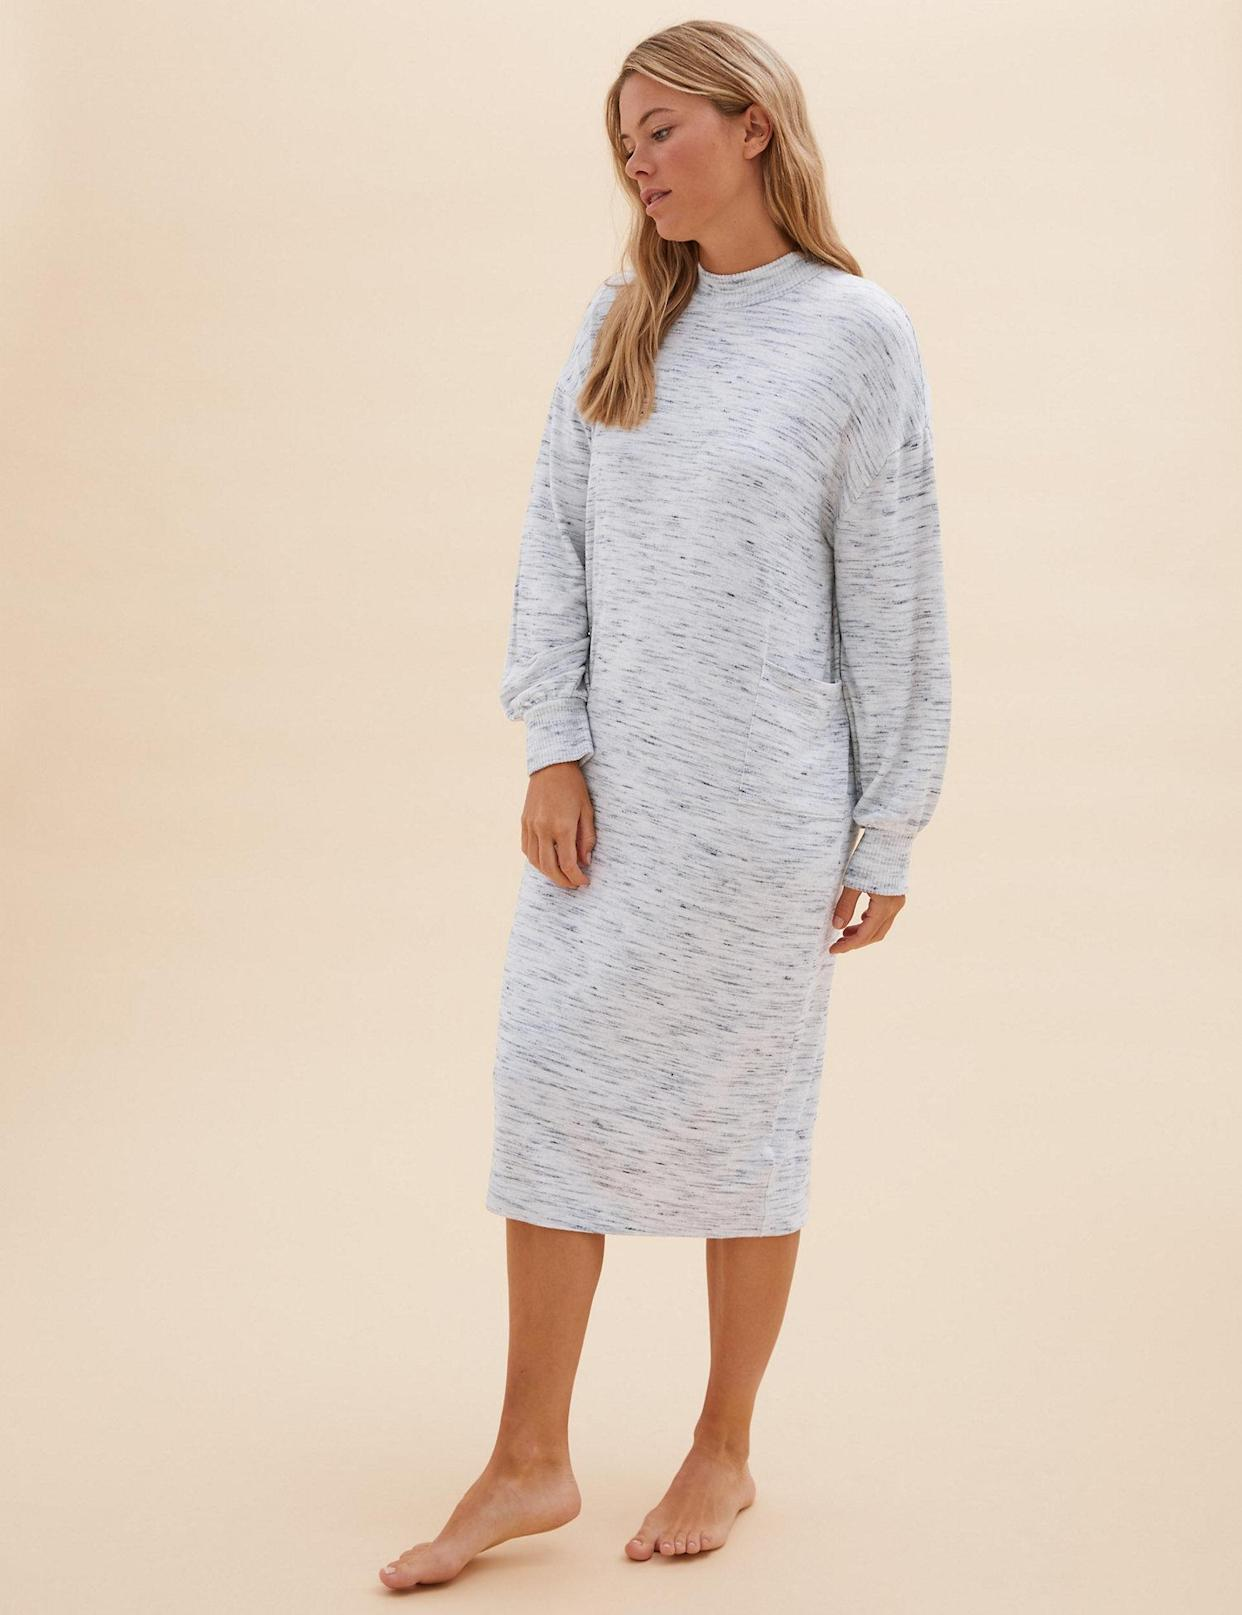 Cosy, comfortable and affordable, what more could you want? (Marks and Spencer)